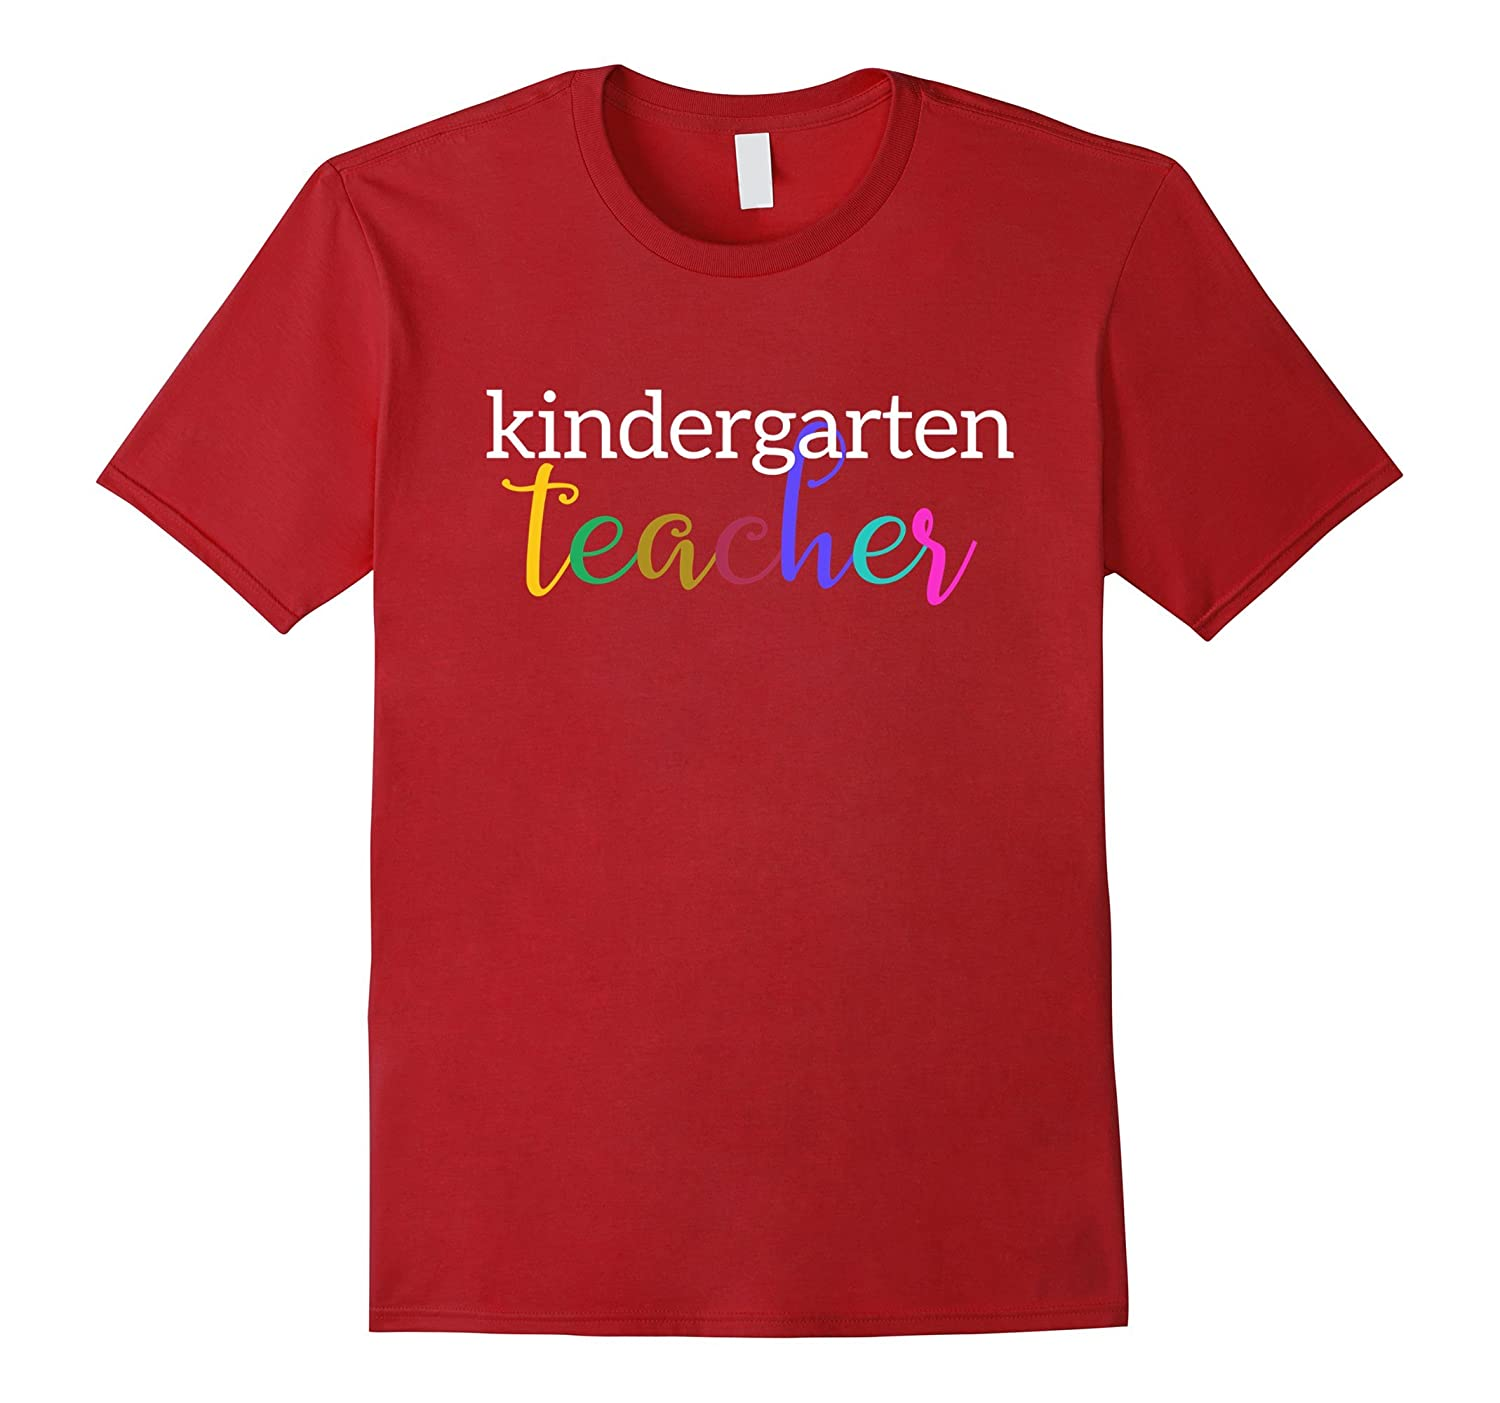 Kindergarten teacher t-shirt. Hello Team Kindergarten tshirt-Art